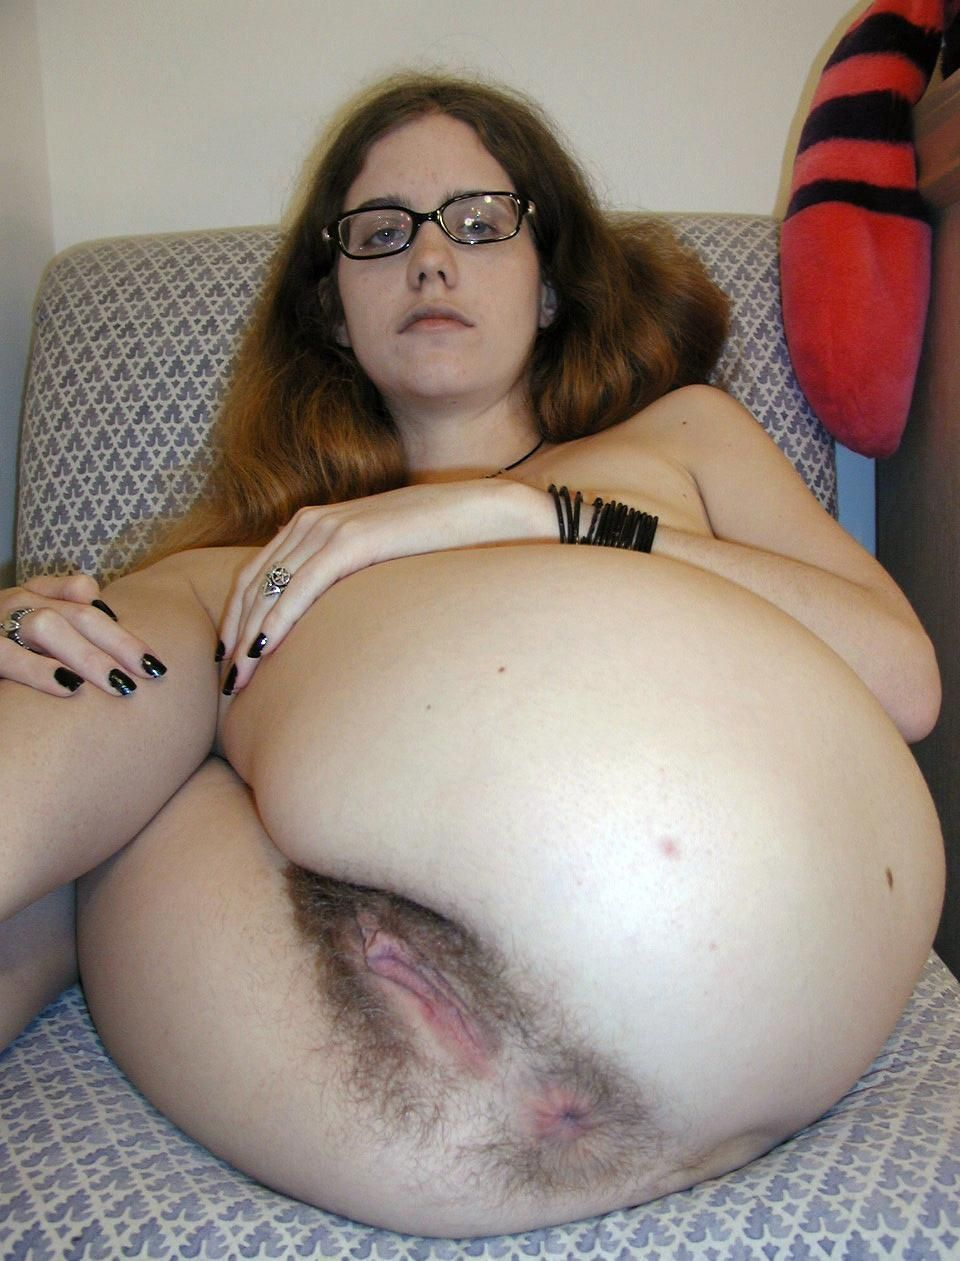 With girl cute pussy chubby hairy